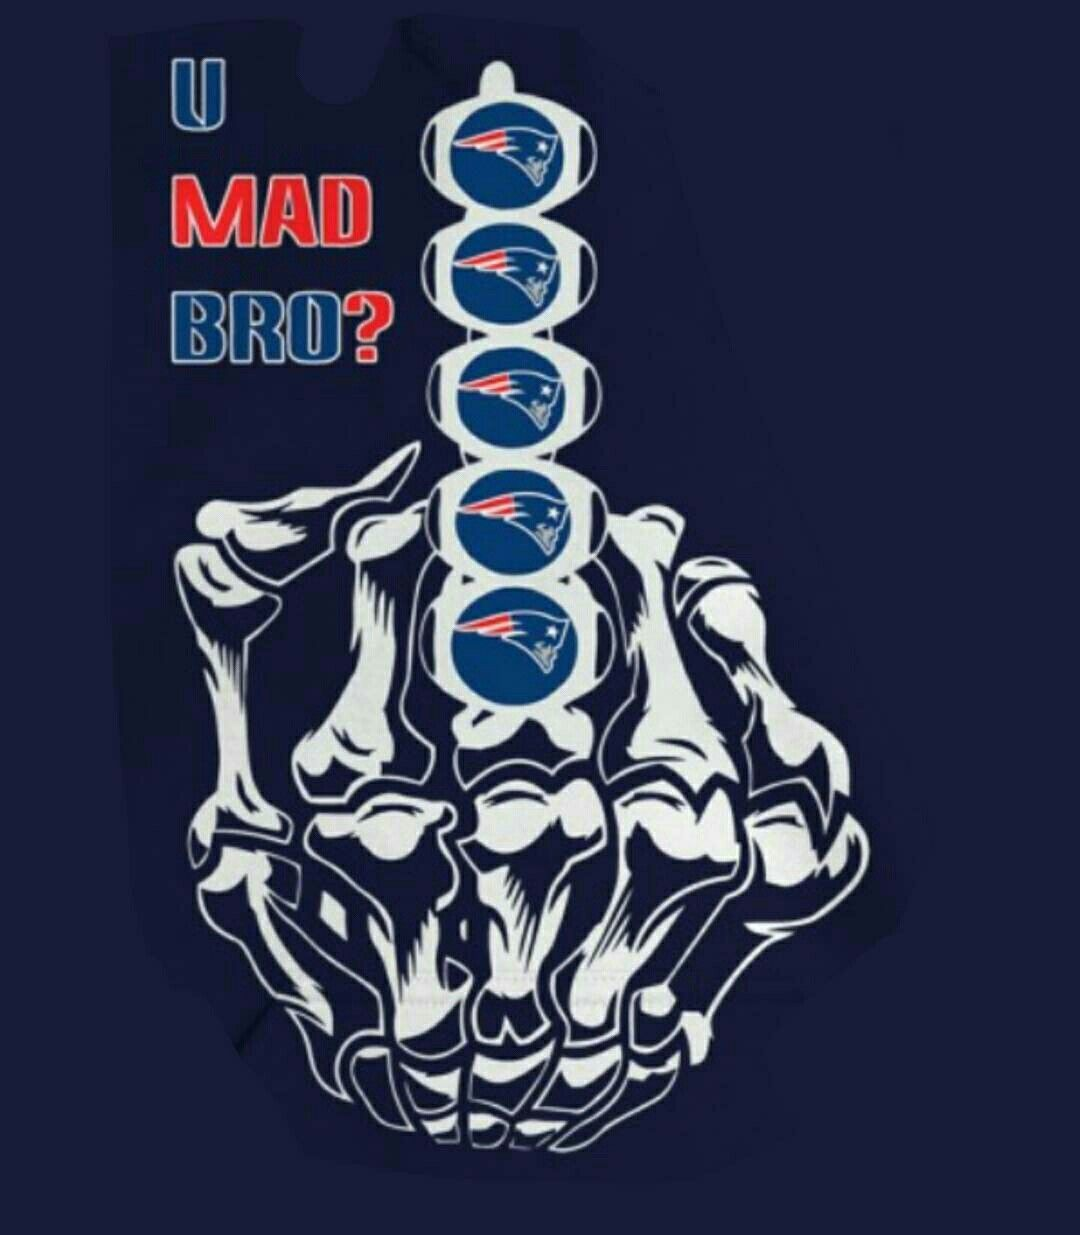 Wallpaper iphone patriots - Stay Mad Up North We Run Over Pigeons